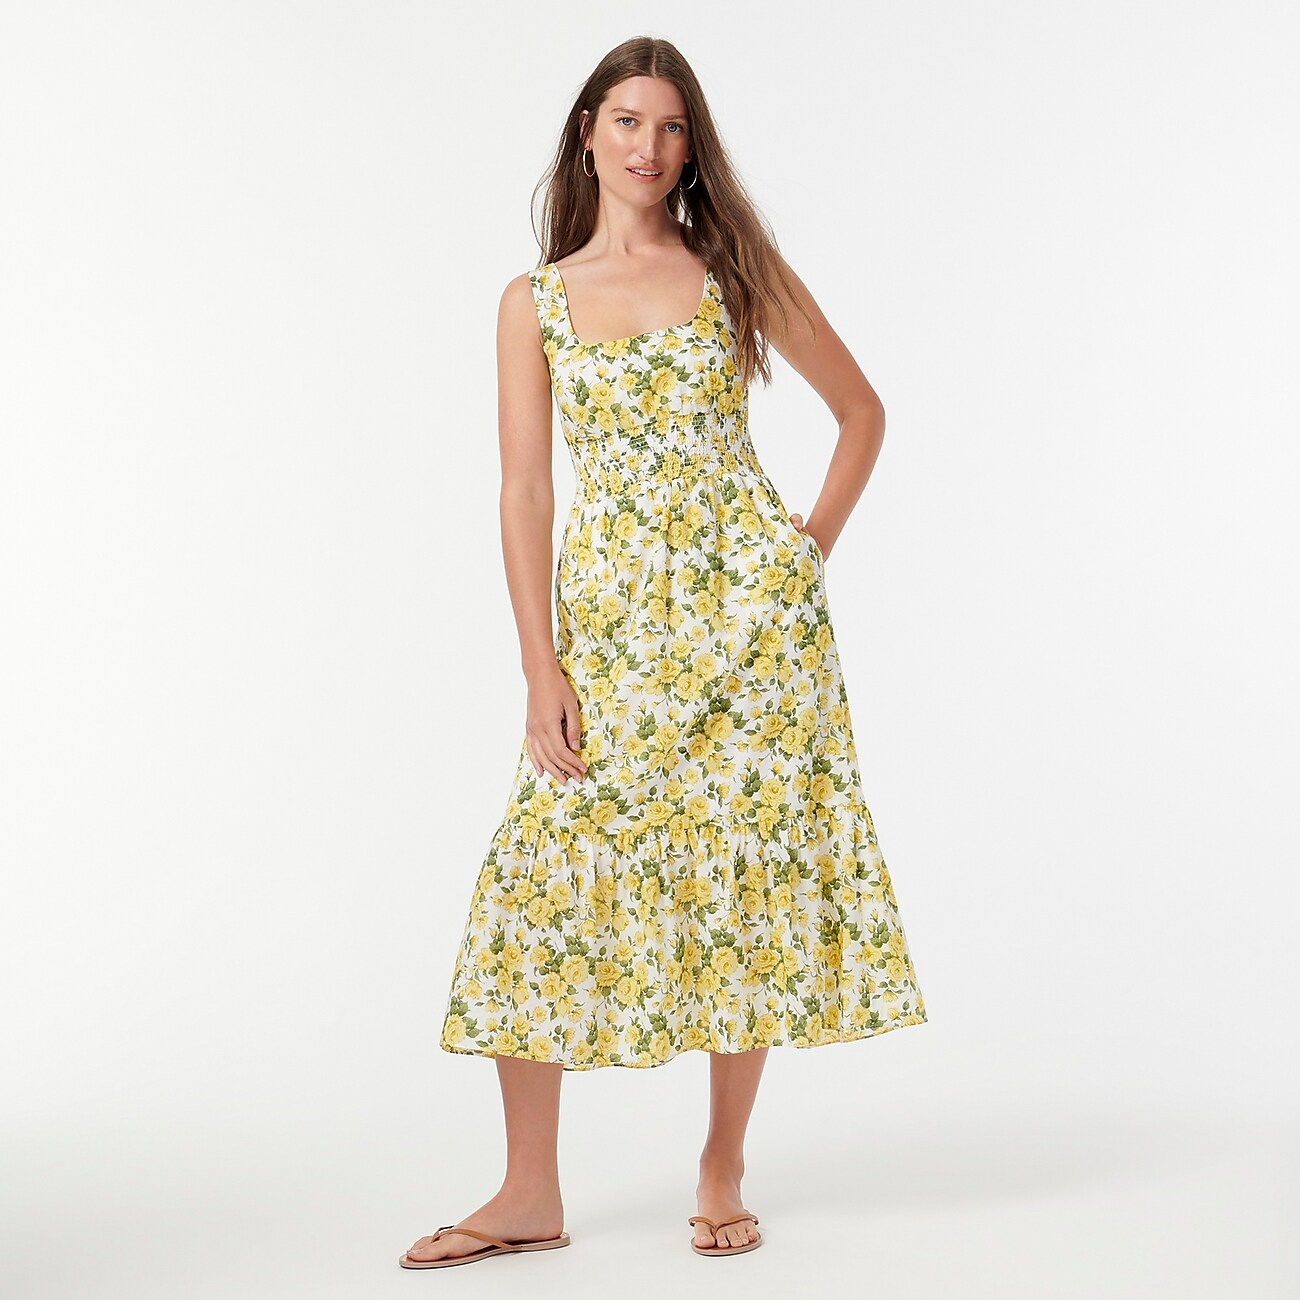 yellow and green spring wedding guest dress from J.Crew